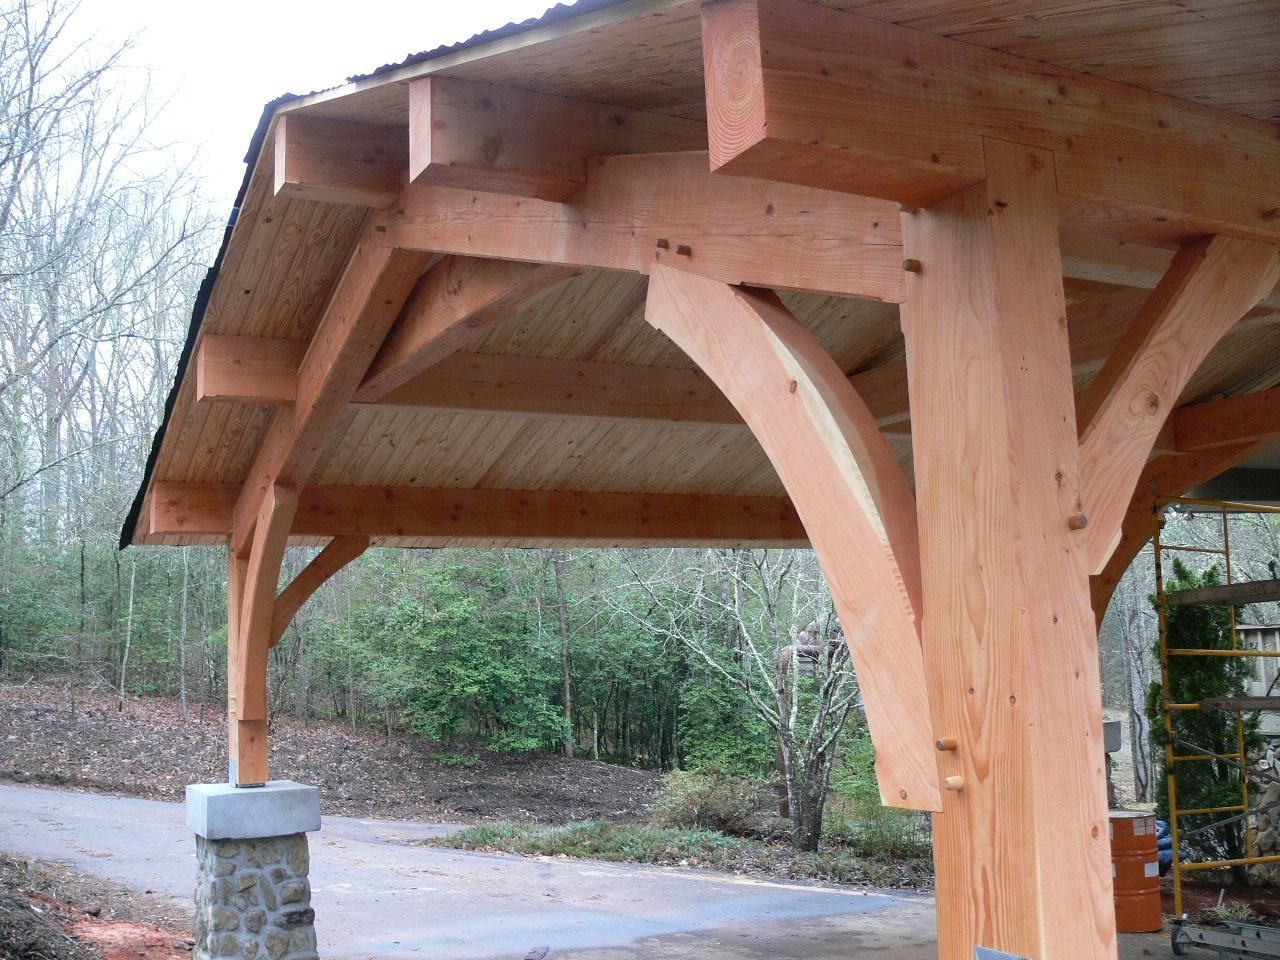 carport deck plans how to made wooden carport plans carport deck plans how to made wooden carport plans woodworking online lessons